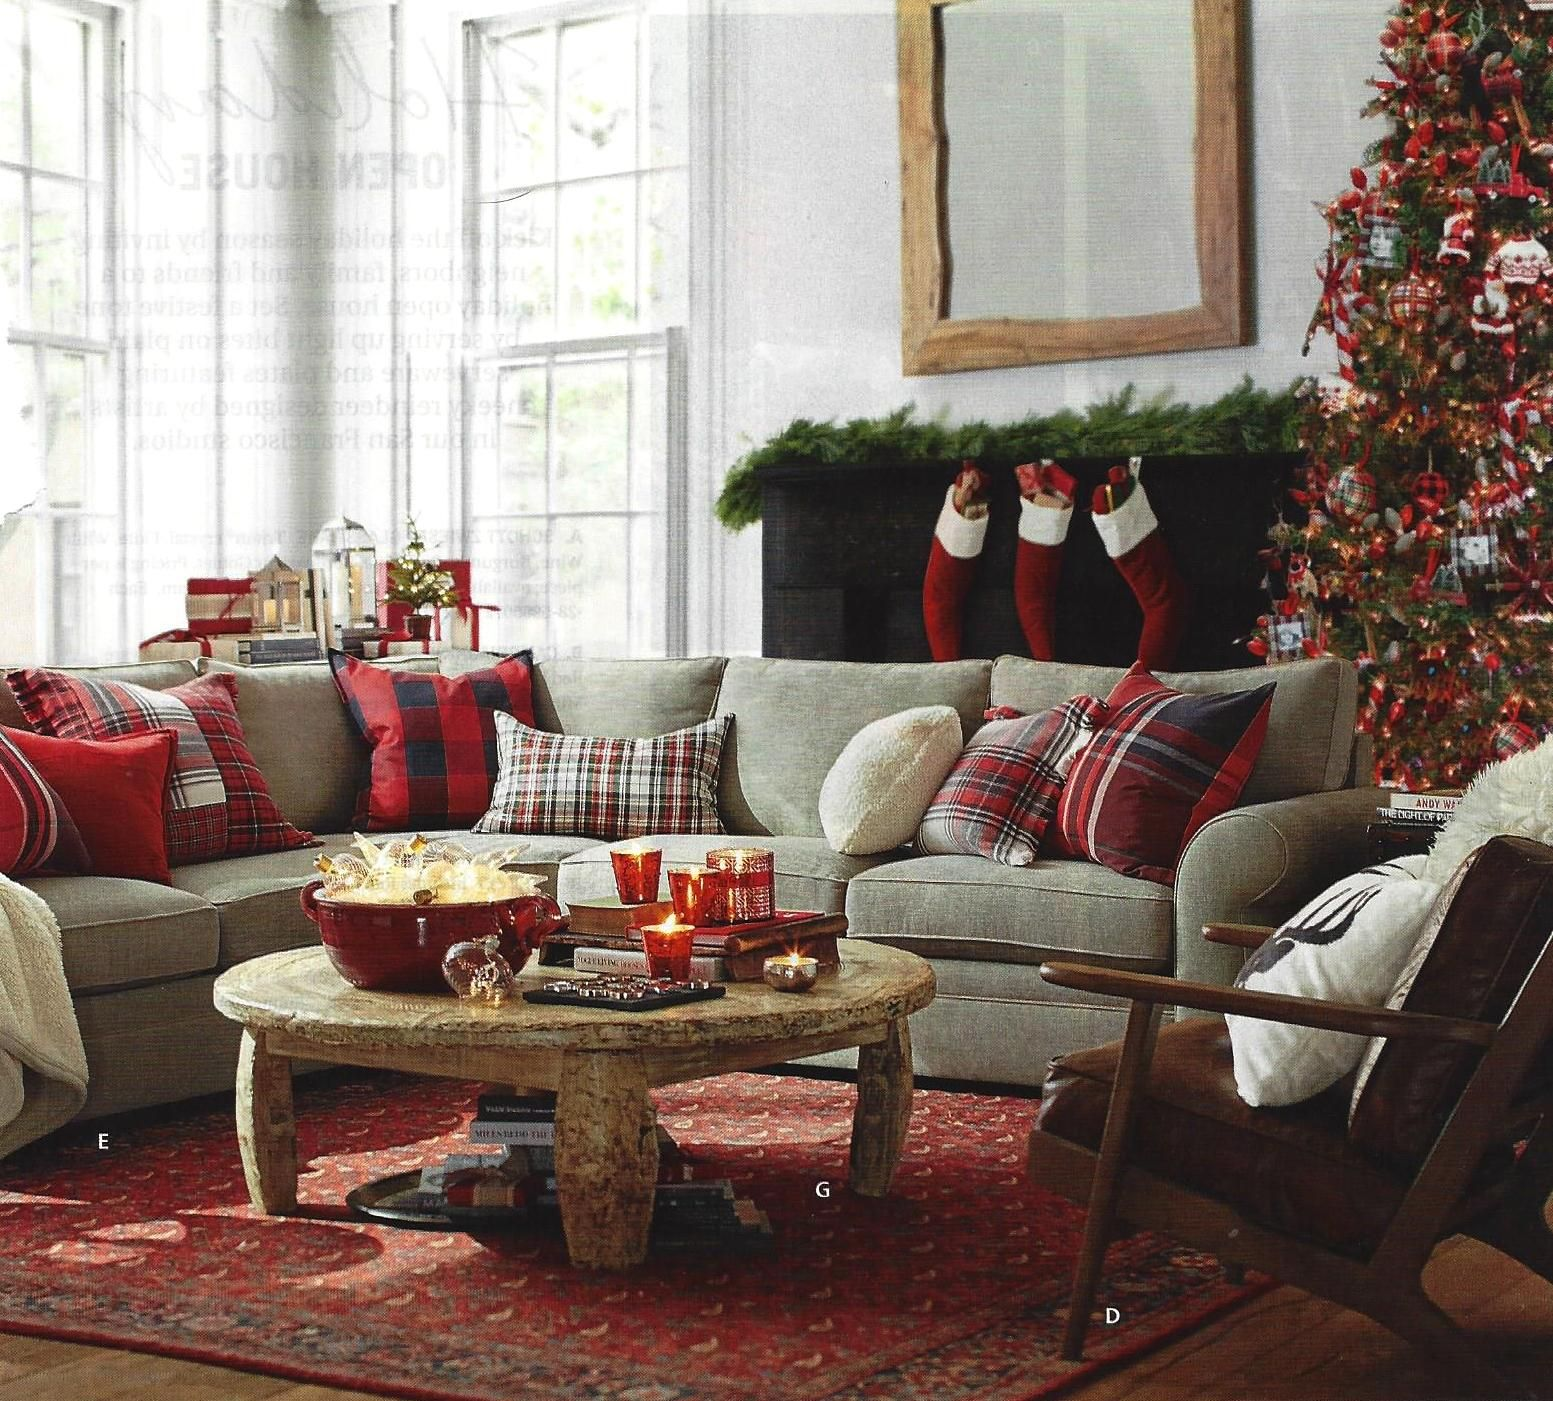 Rom Pottery Barn Catalog Dec 2016 This Is The Way To Mix Plaids These Christmas Pillows